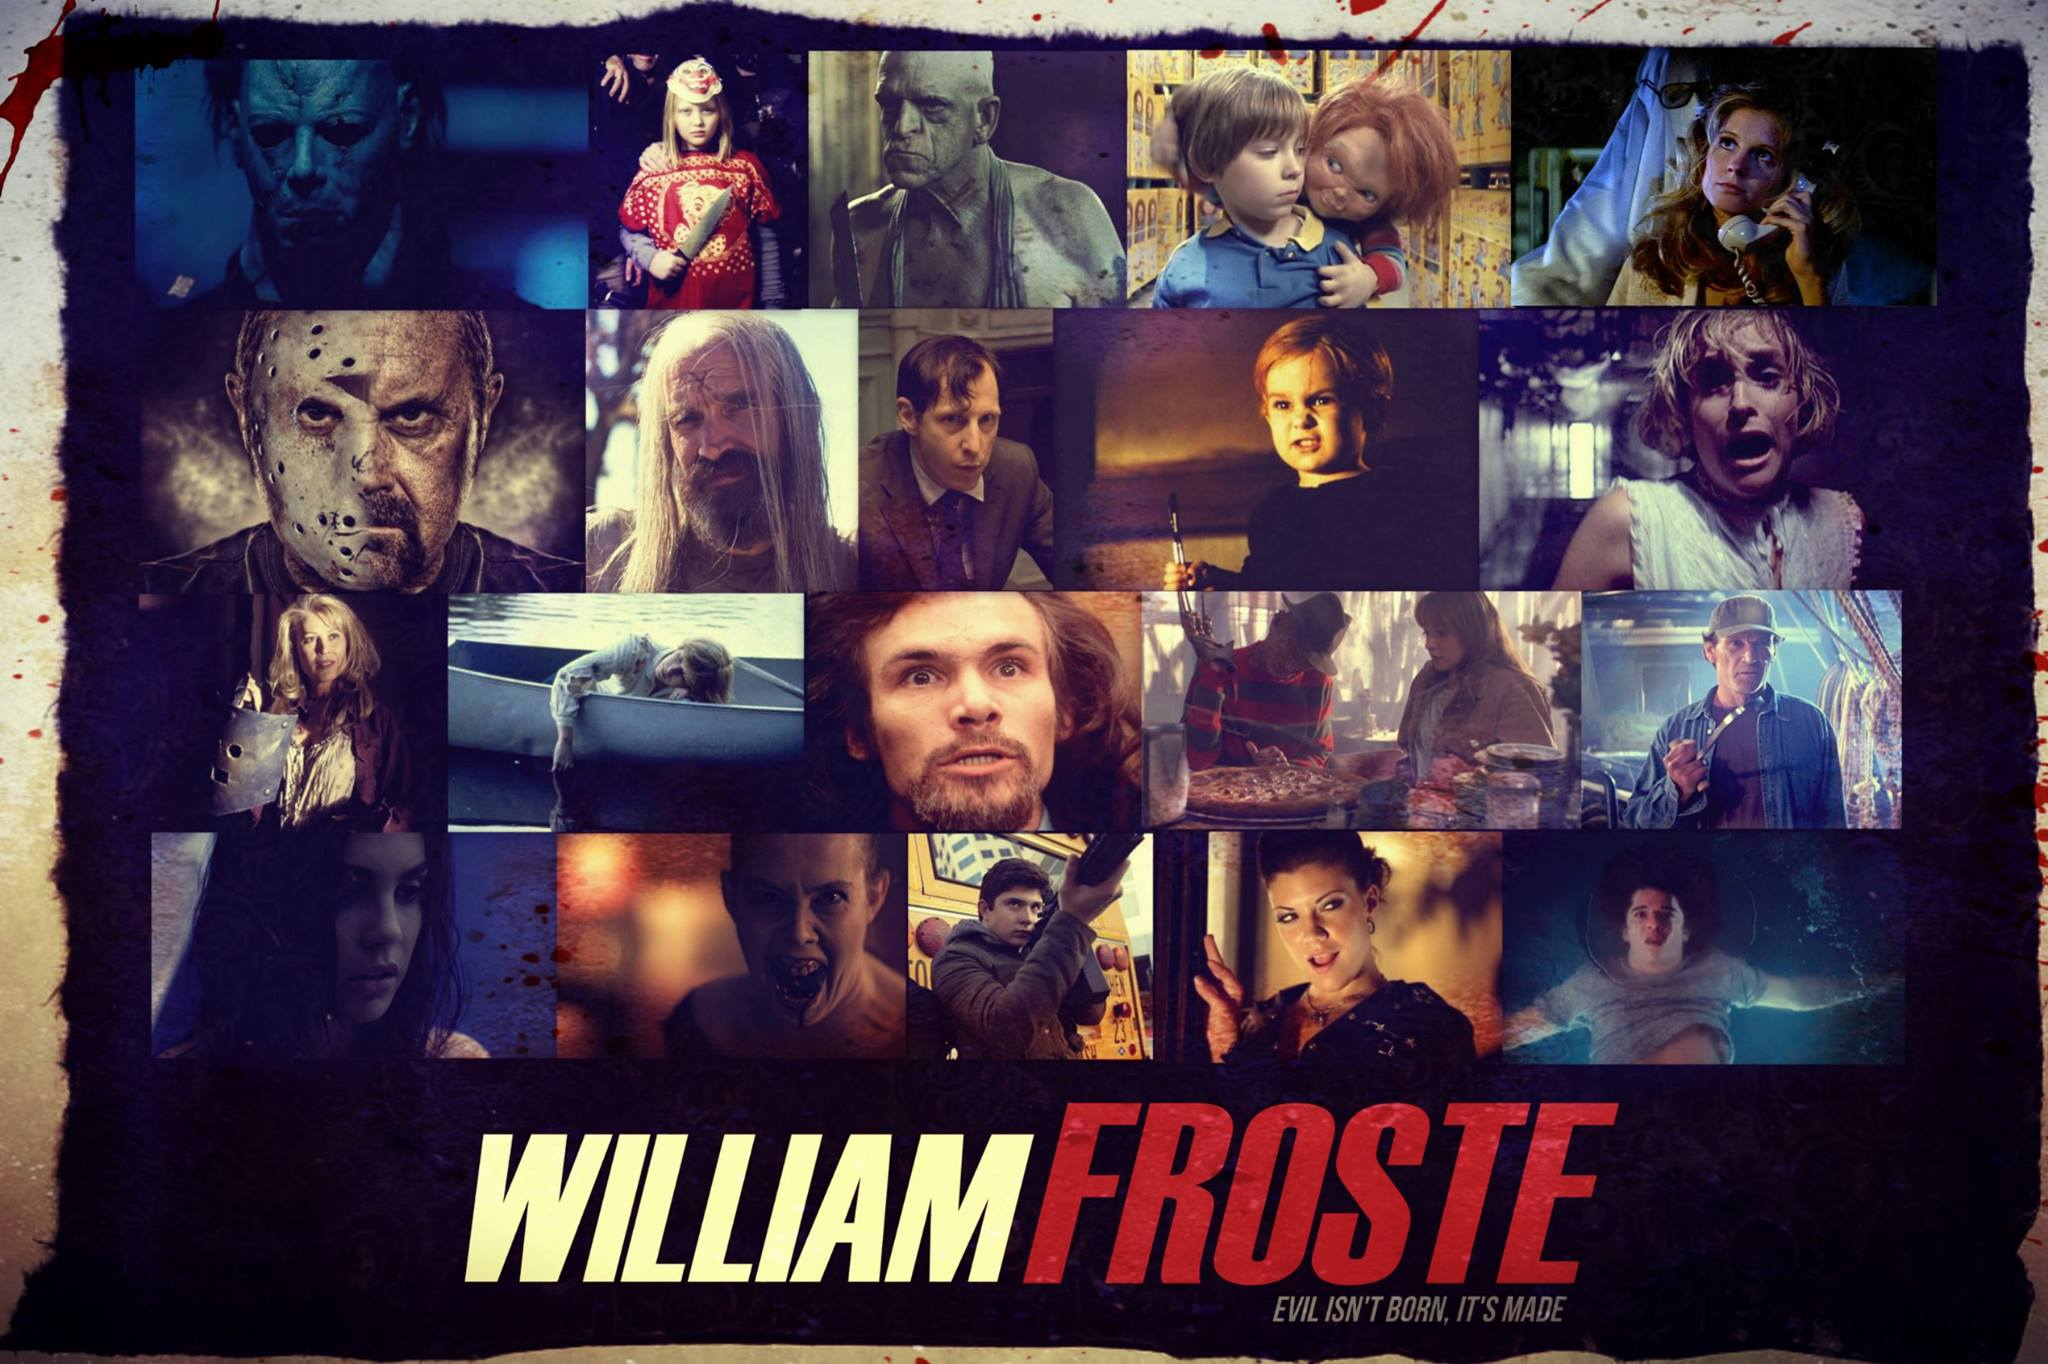 williamfroste - More William Froste Details; Behind the Frosted Glass Docu-Series in the Works